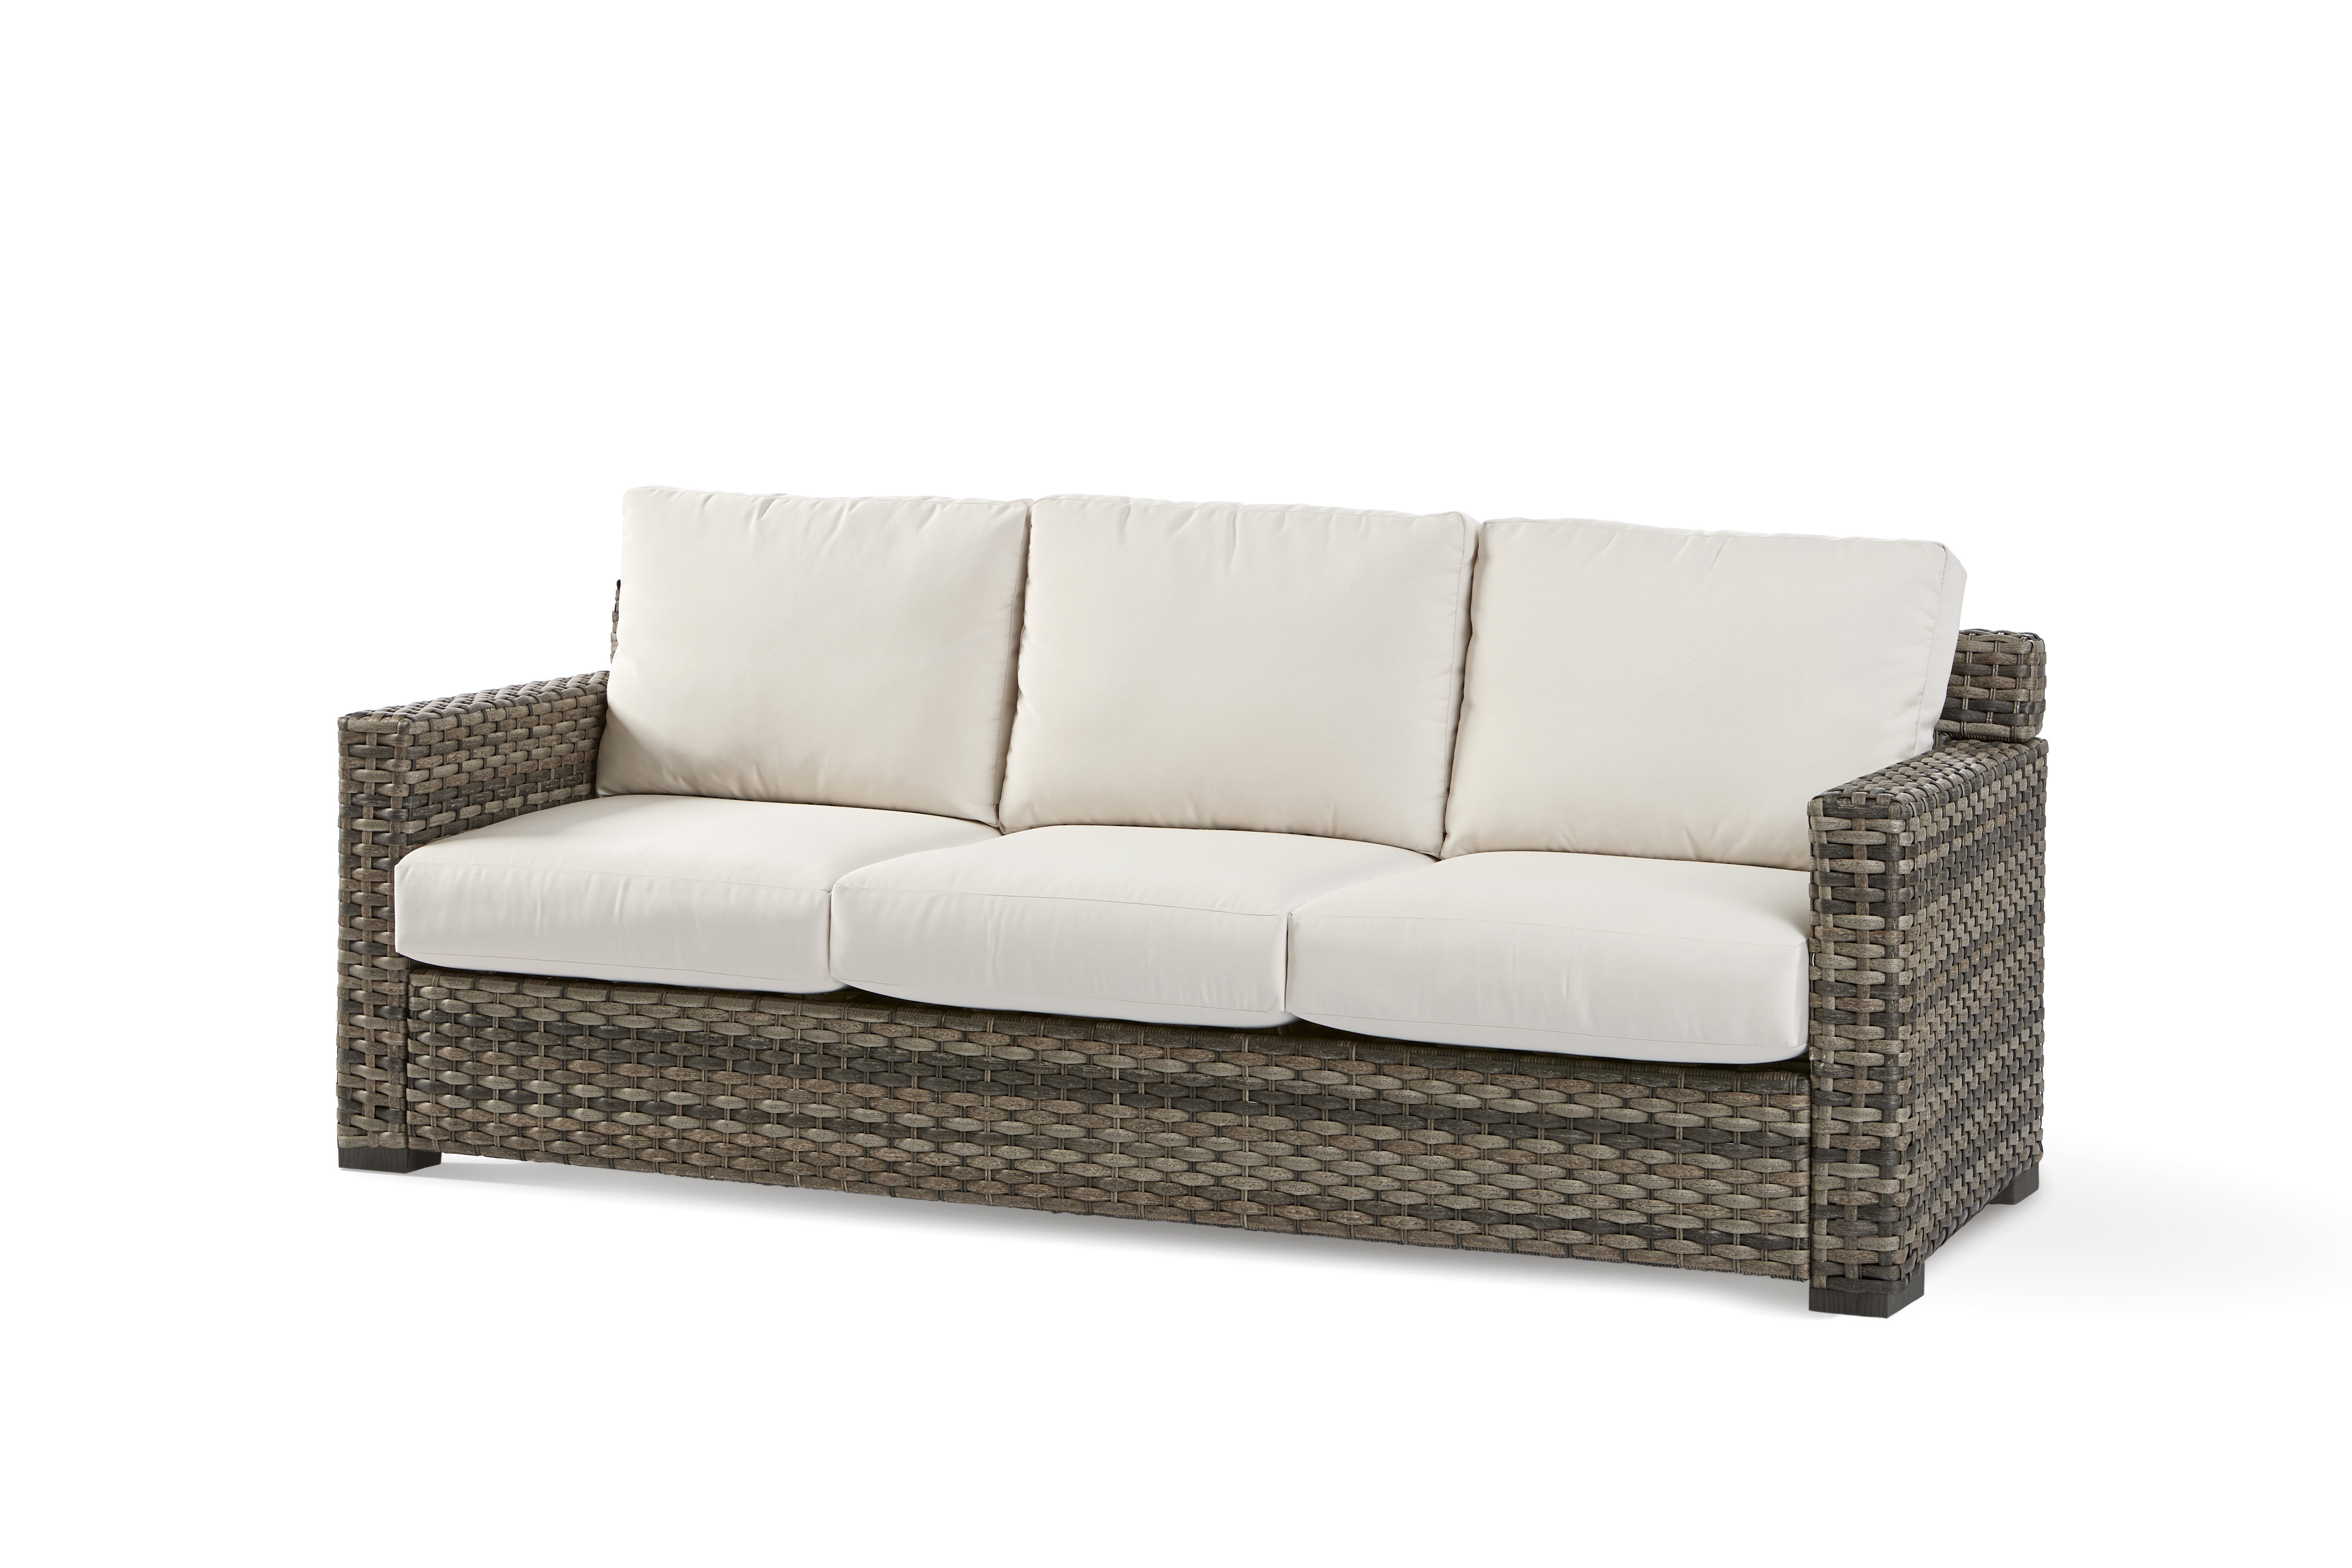 Jakarta Patio Sofa With Sunbrella Cushion Pertaining To 2020 Mcmanis Patio Sofas With Cushion (View 6 of 20)